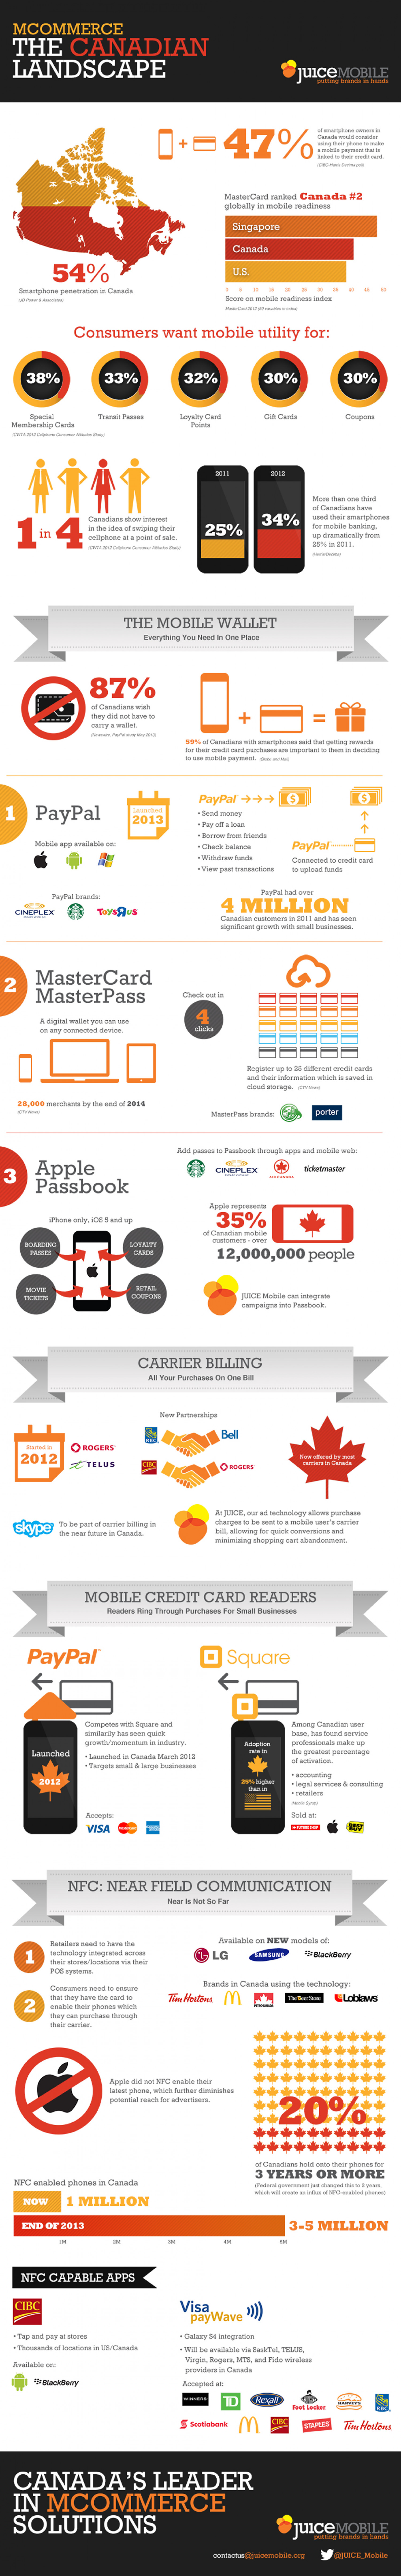 Mcommerce: The Canadian Landscape Infographic